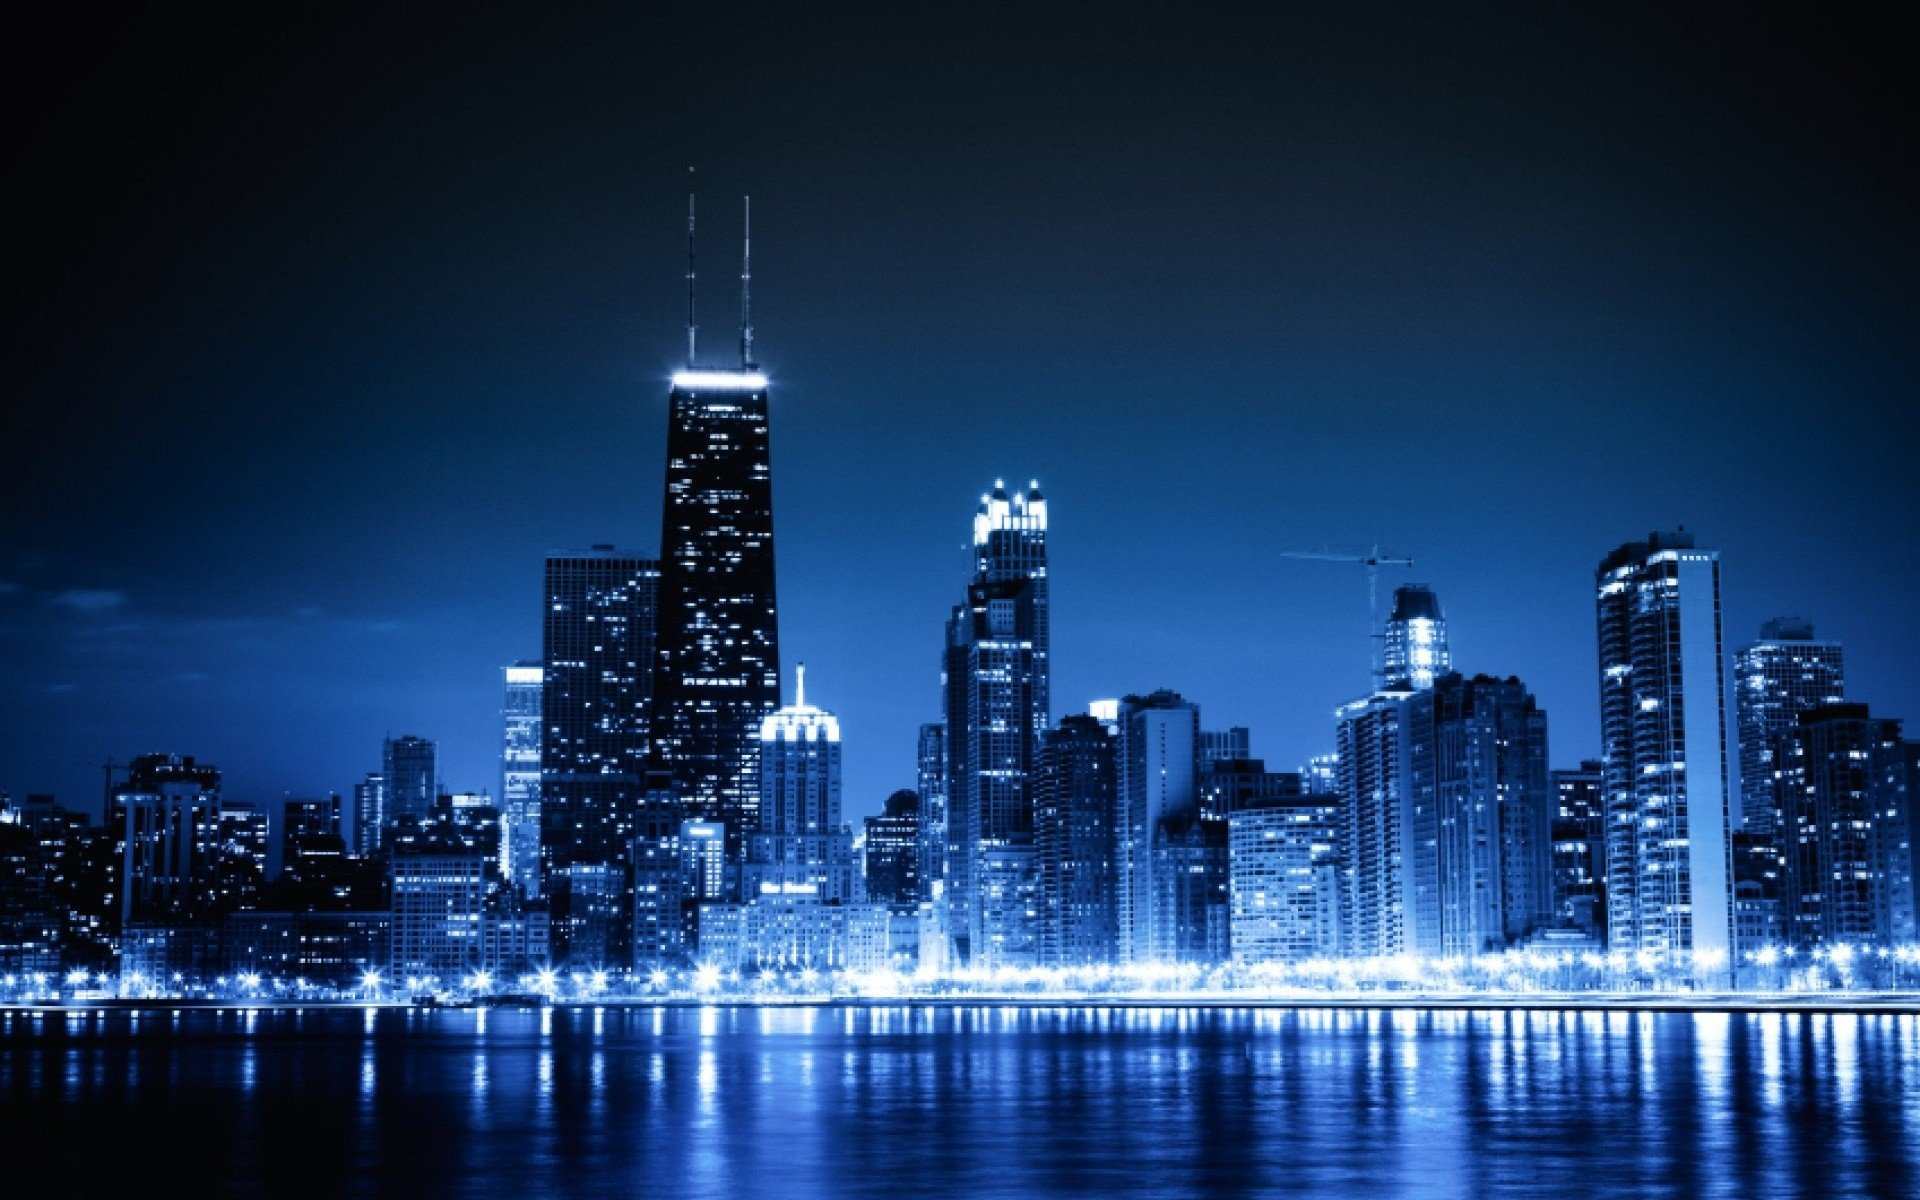 download cityscapes Chicago night lights urban skyscrapers 1920x1200